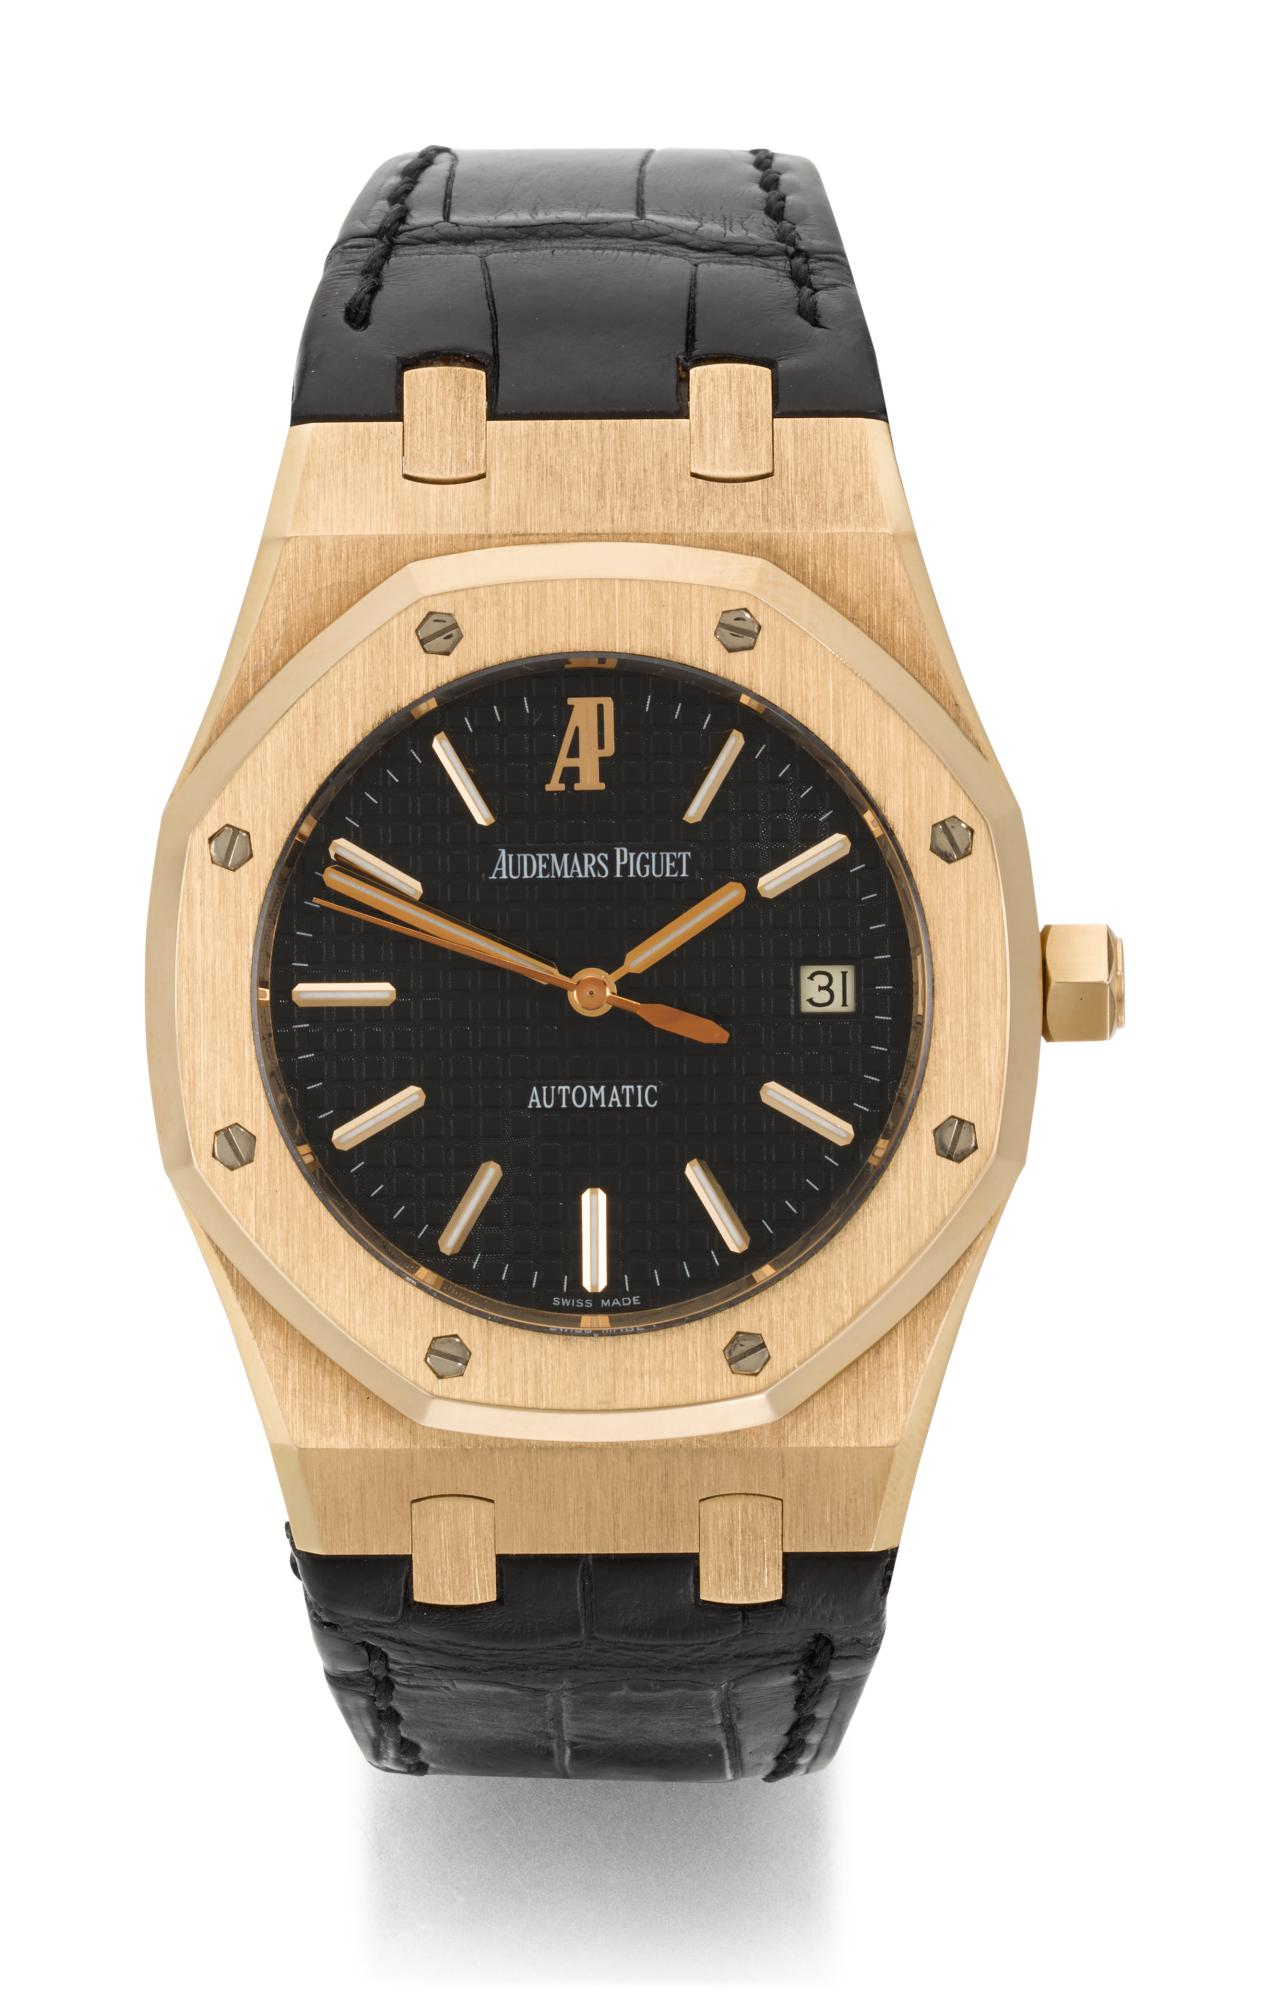 AUDEMARS PIGUET | ROYAL OAK, REFERENCE 15300OR.OO.D002CR.01,  PINK GOLD WRISTWATCH WITH DATE,  CIRCA 2006